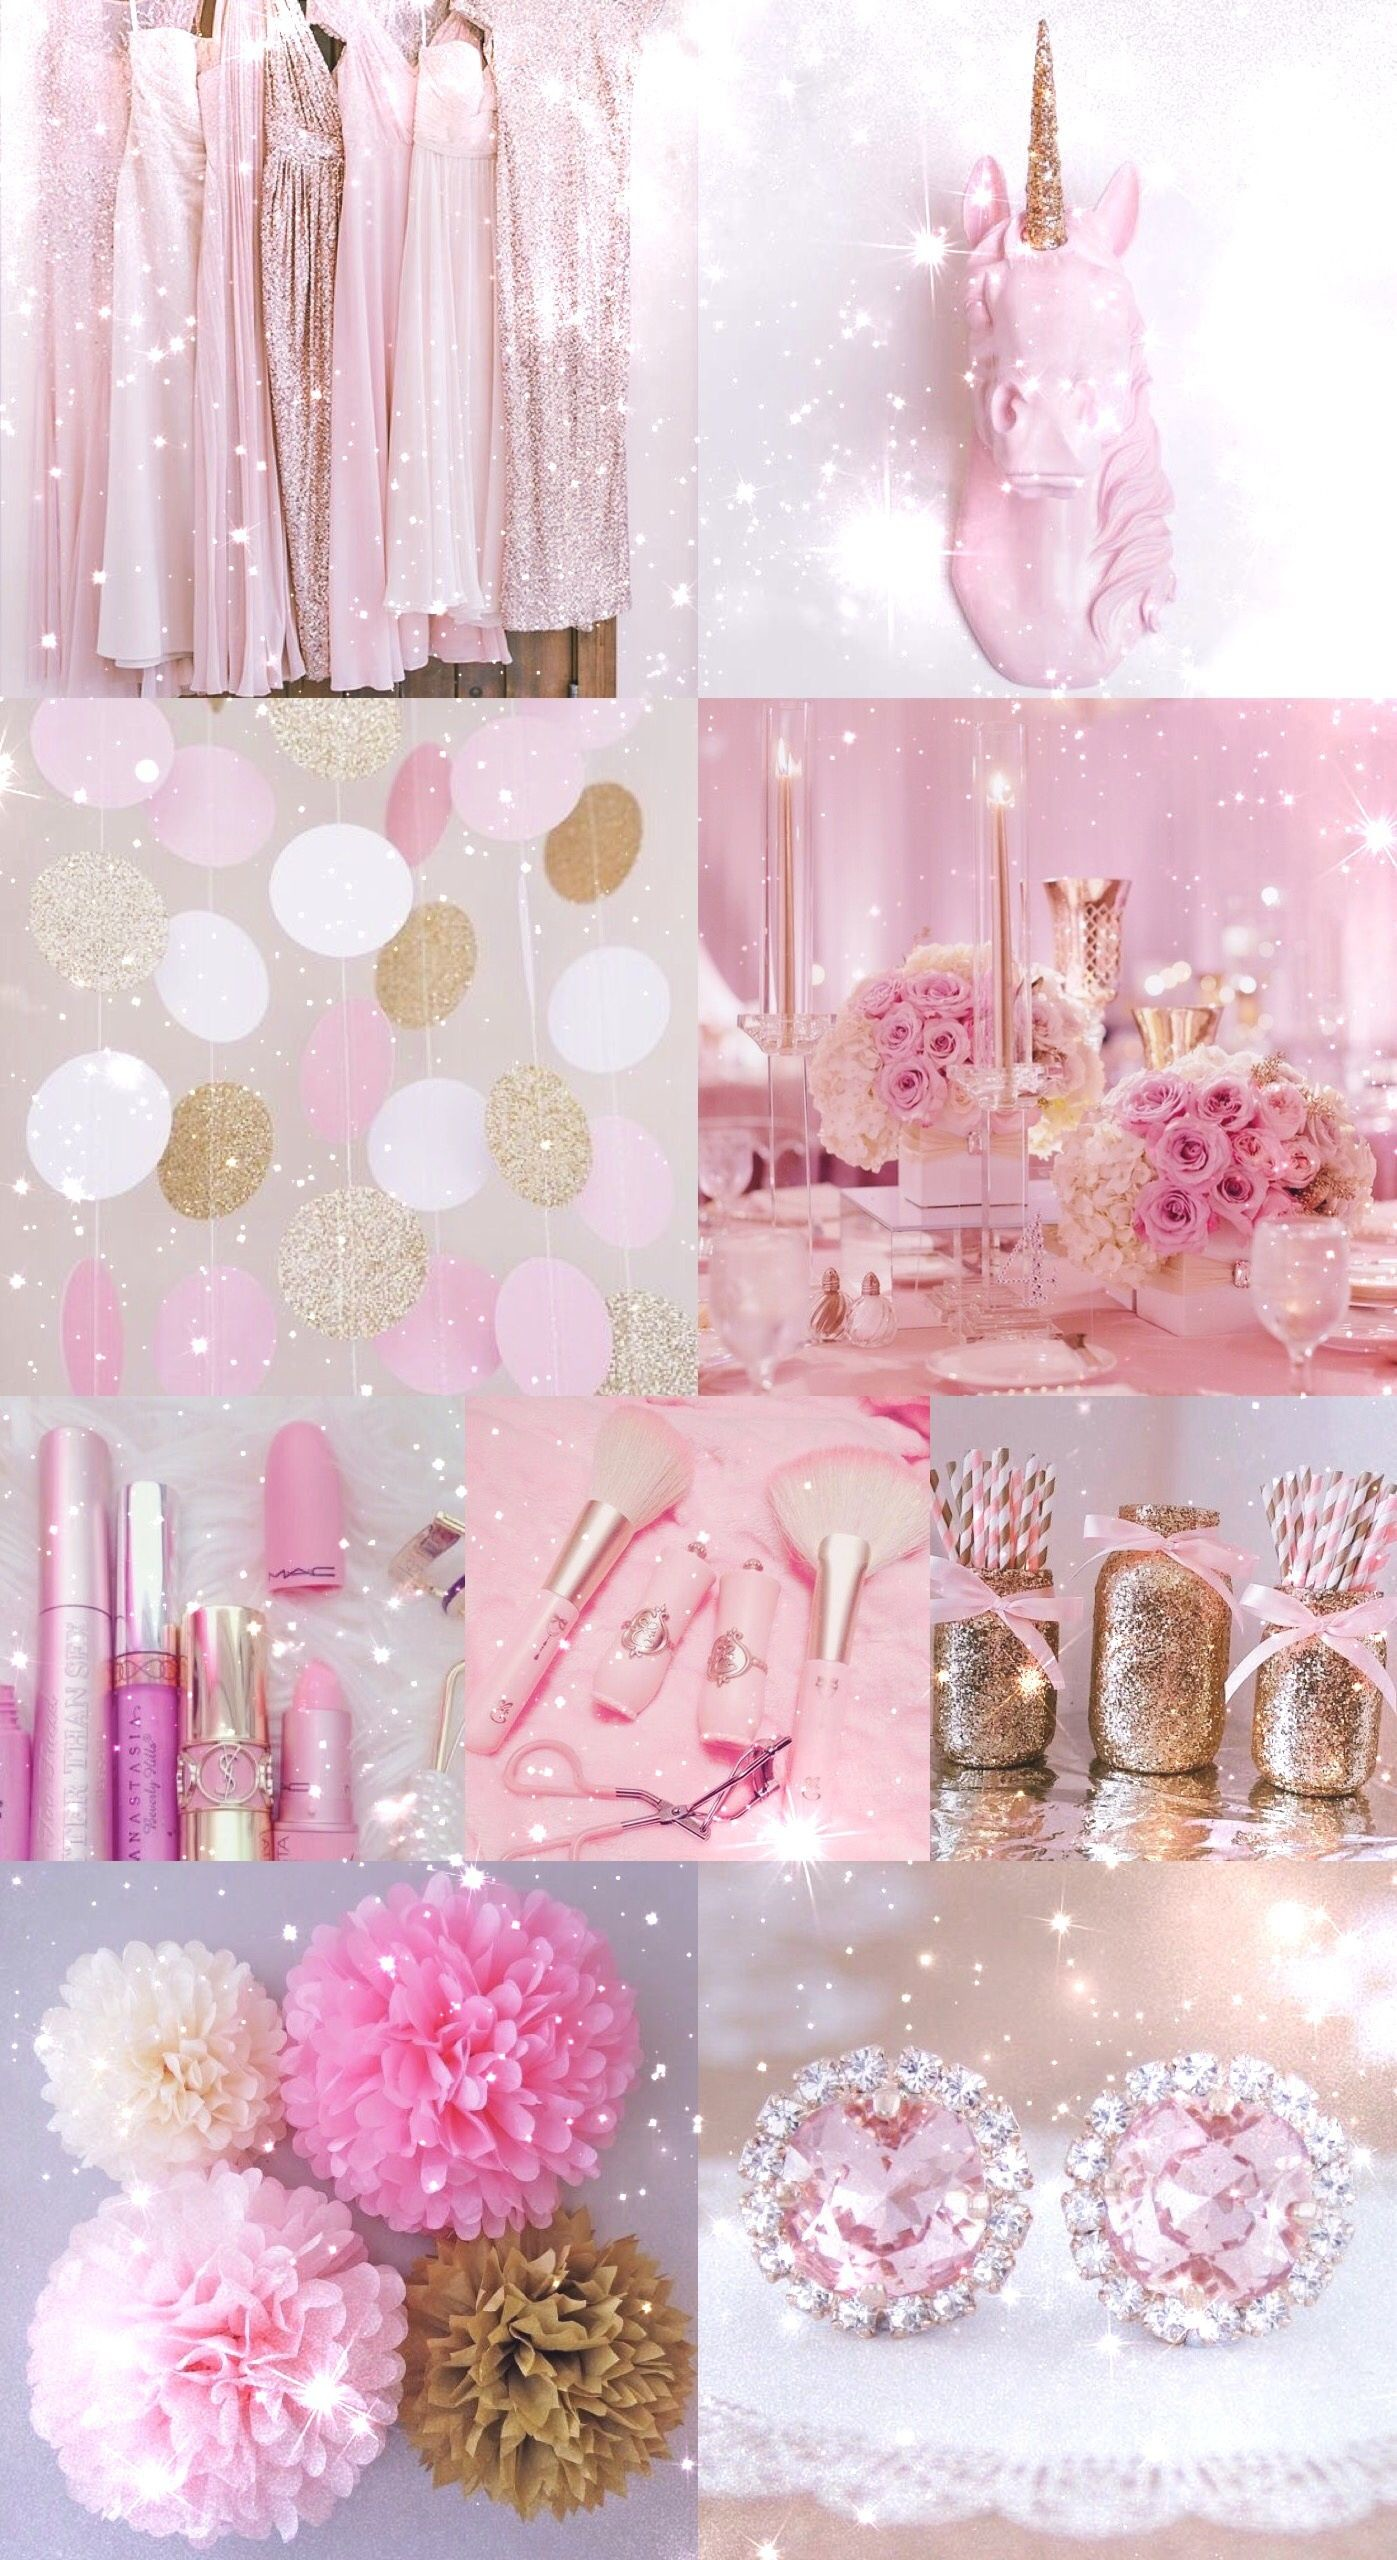 Res: 1397x2560, pink, gold, wallpaper, background, hd, iPhone, glitter, sparkle,